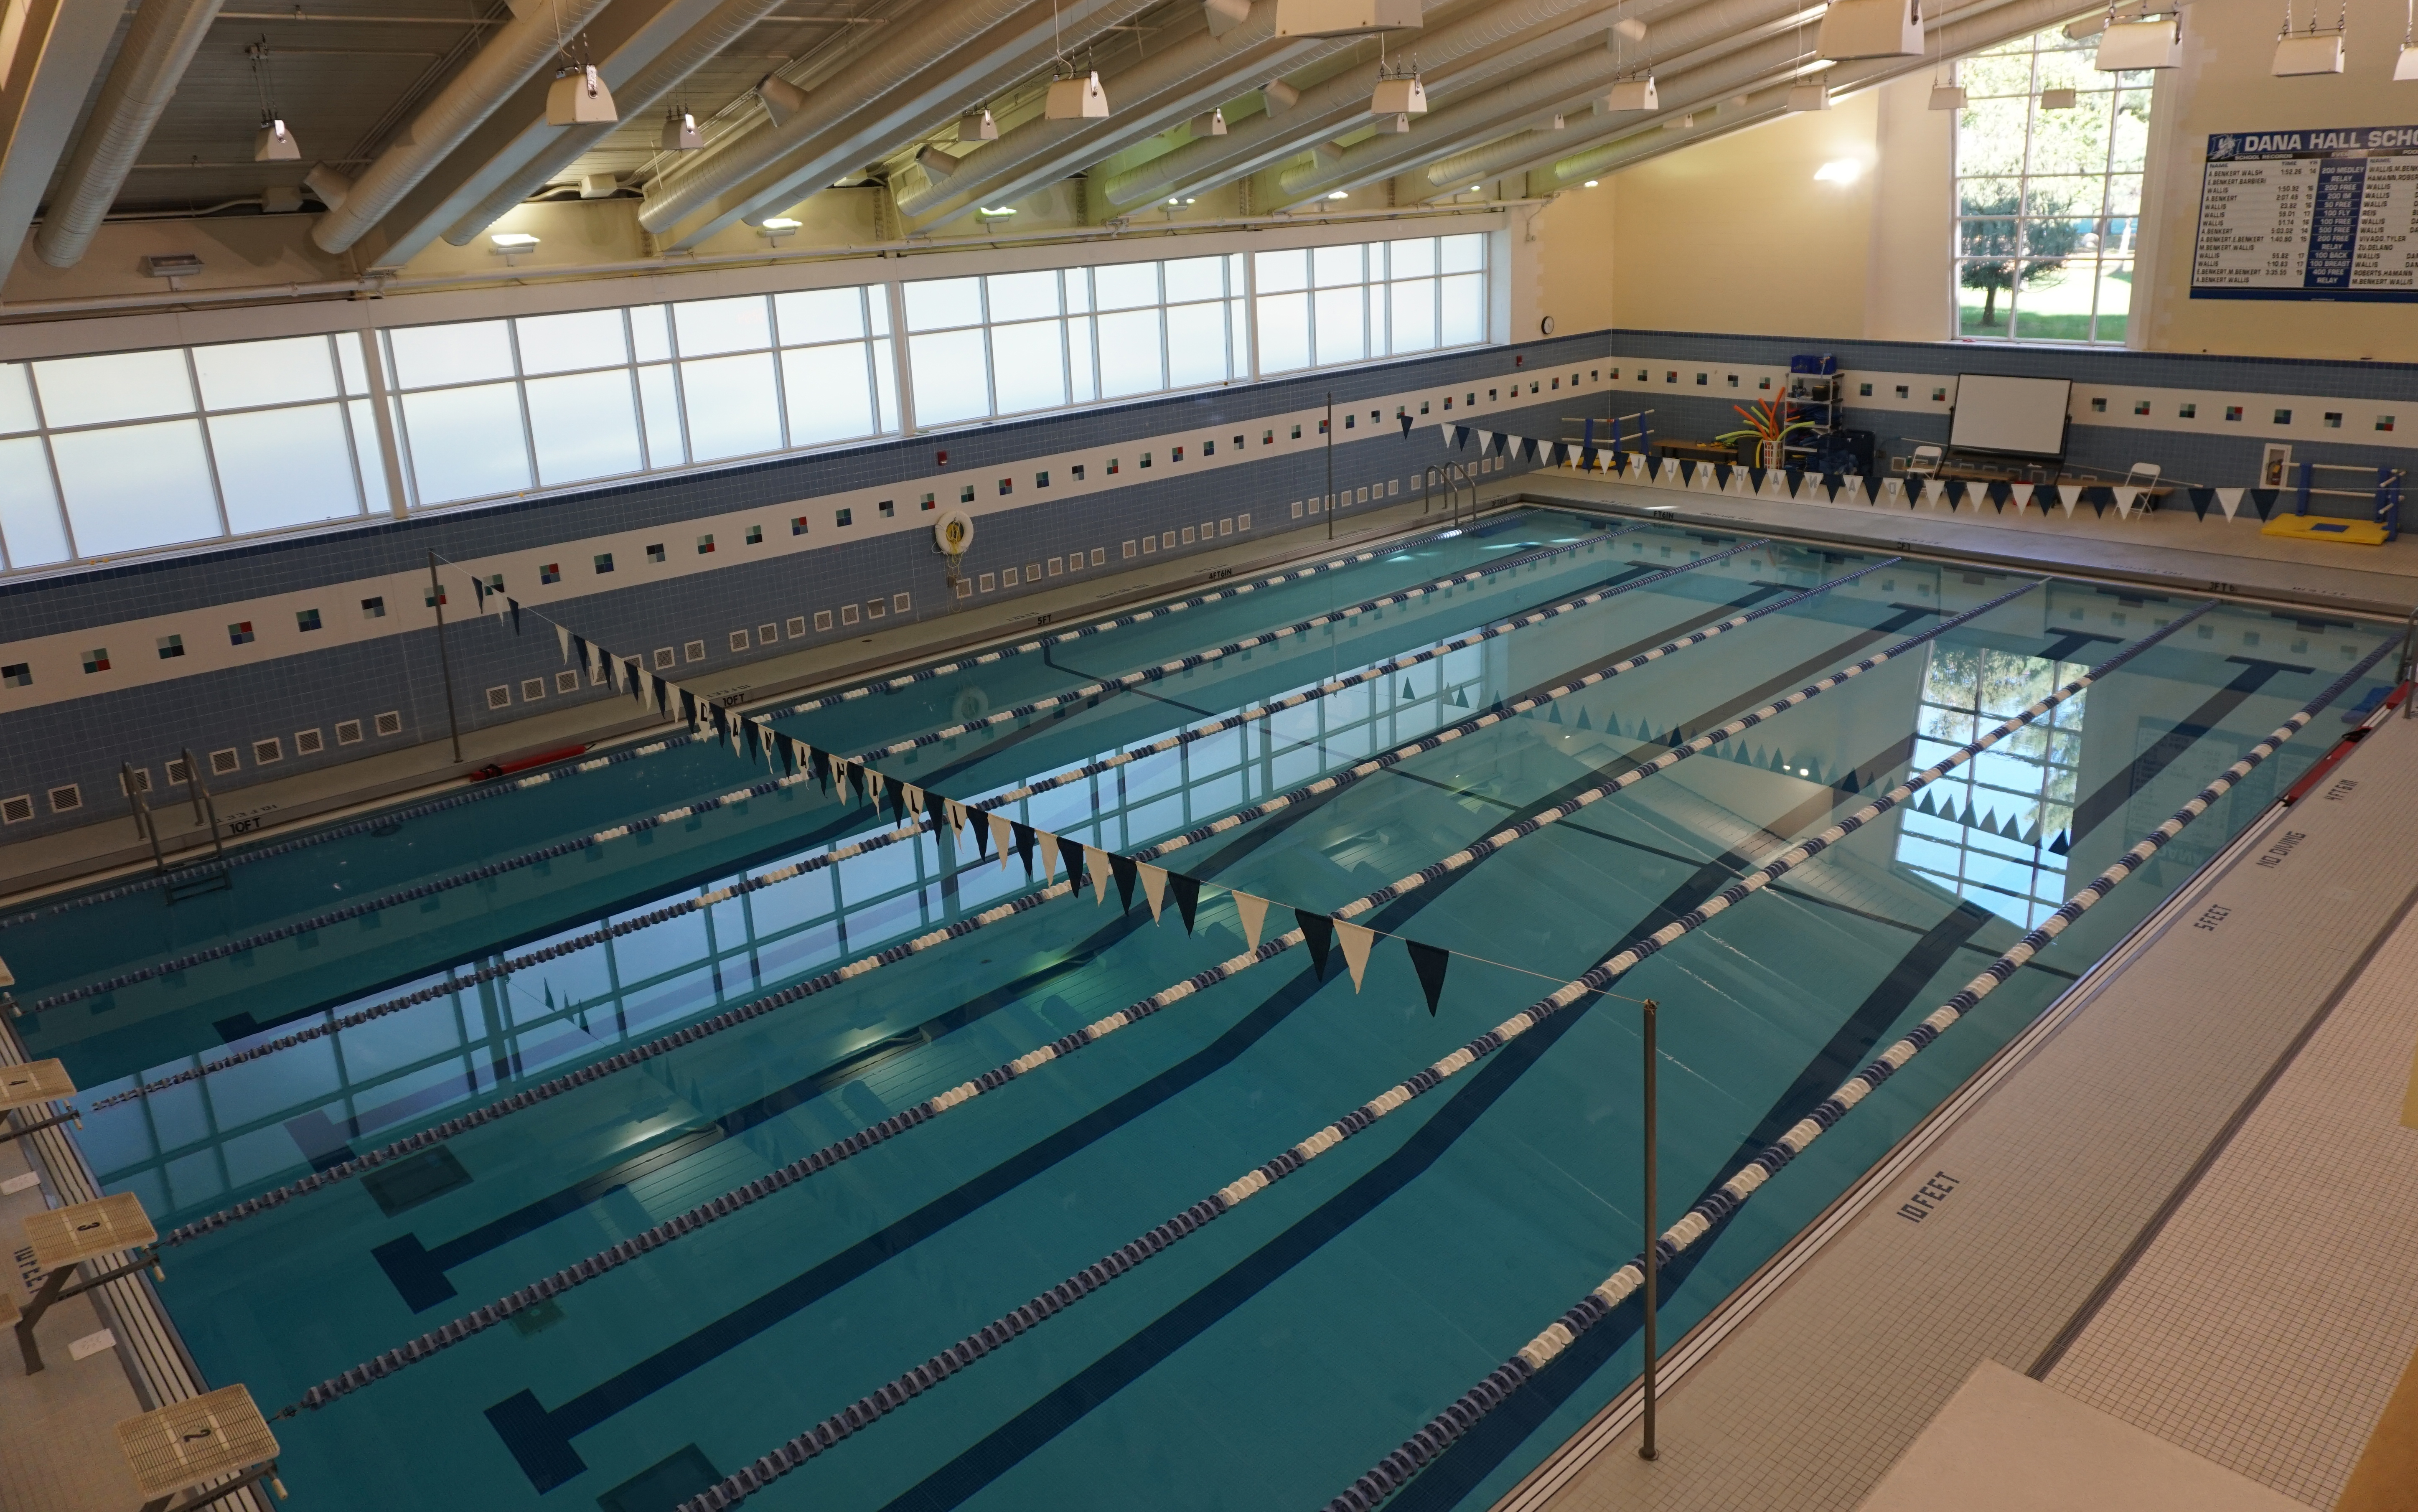 Pool in the Dana Hall gym